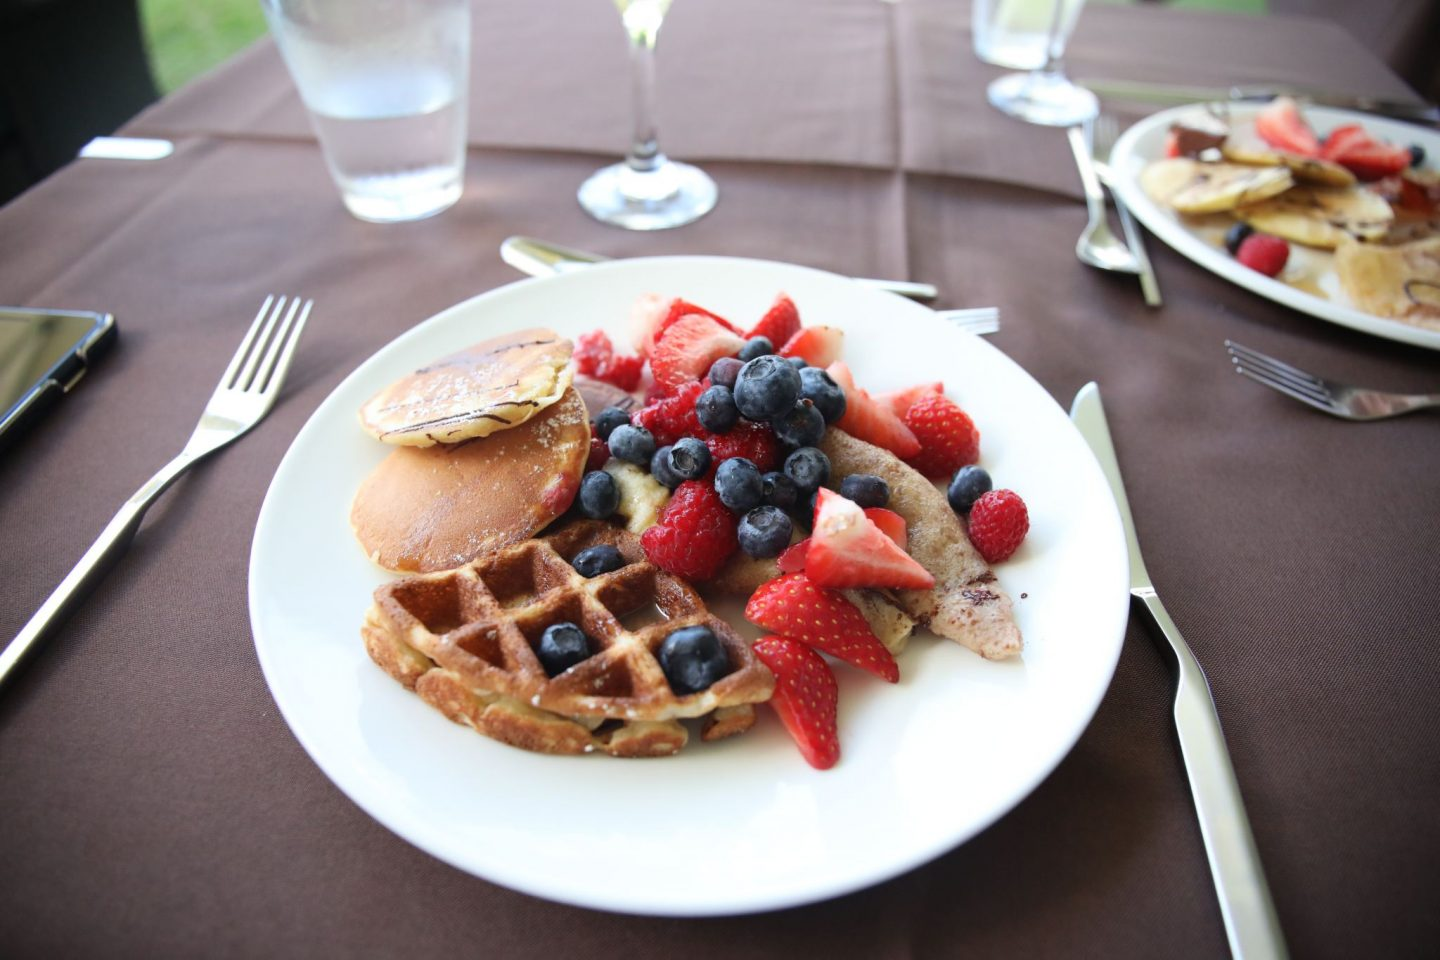 Brunch at Luca, Grand Cayman, The Cayman Islands, Katie Heath, KALANCHOE